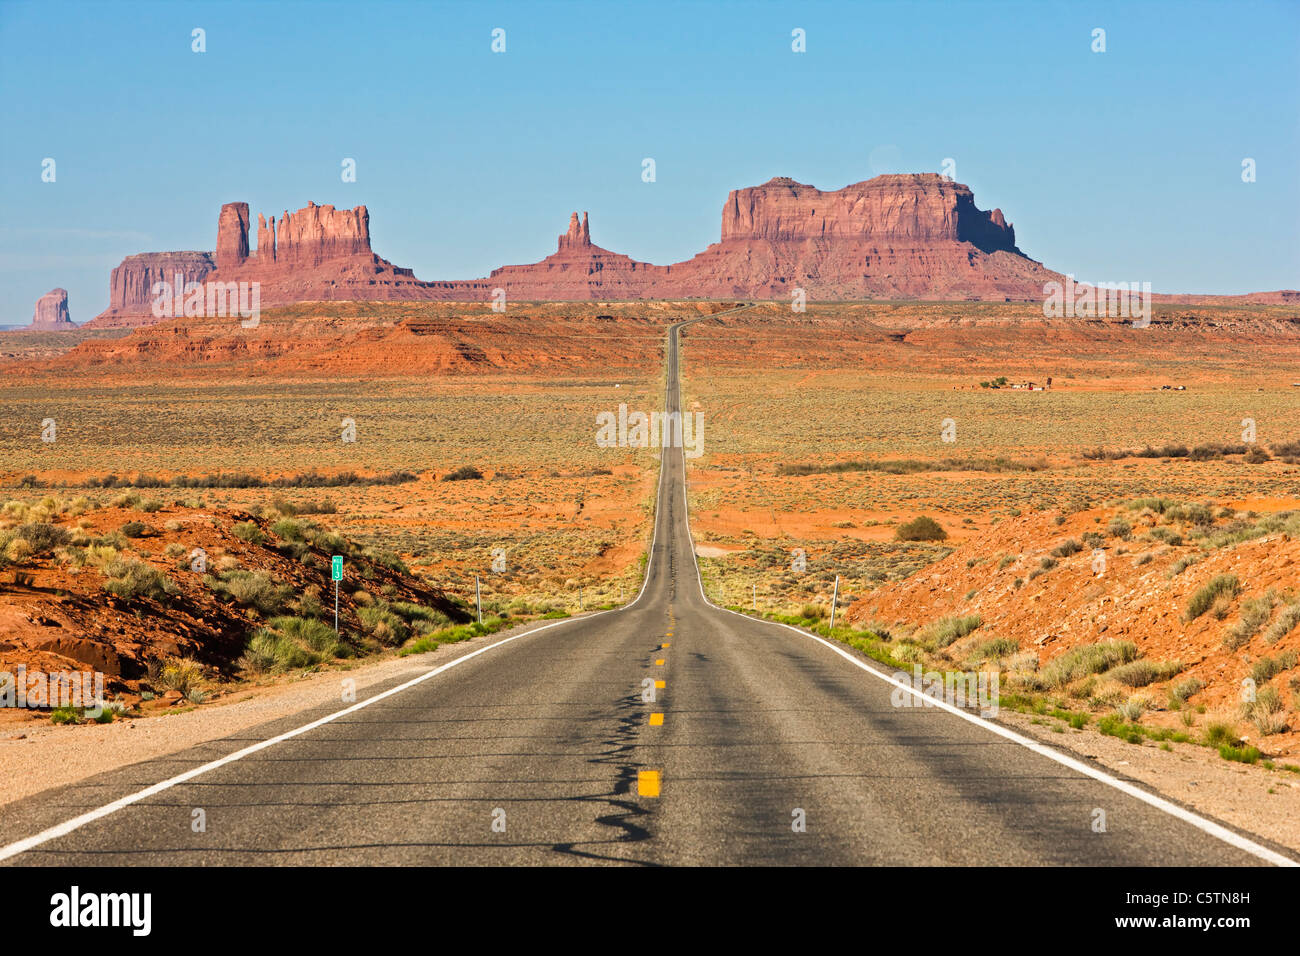 Estados Unidos, Utah, Monument Valley, Highway 163 Imagen De Stock